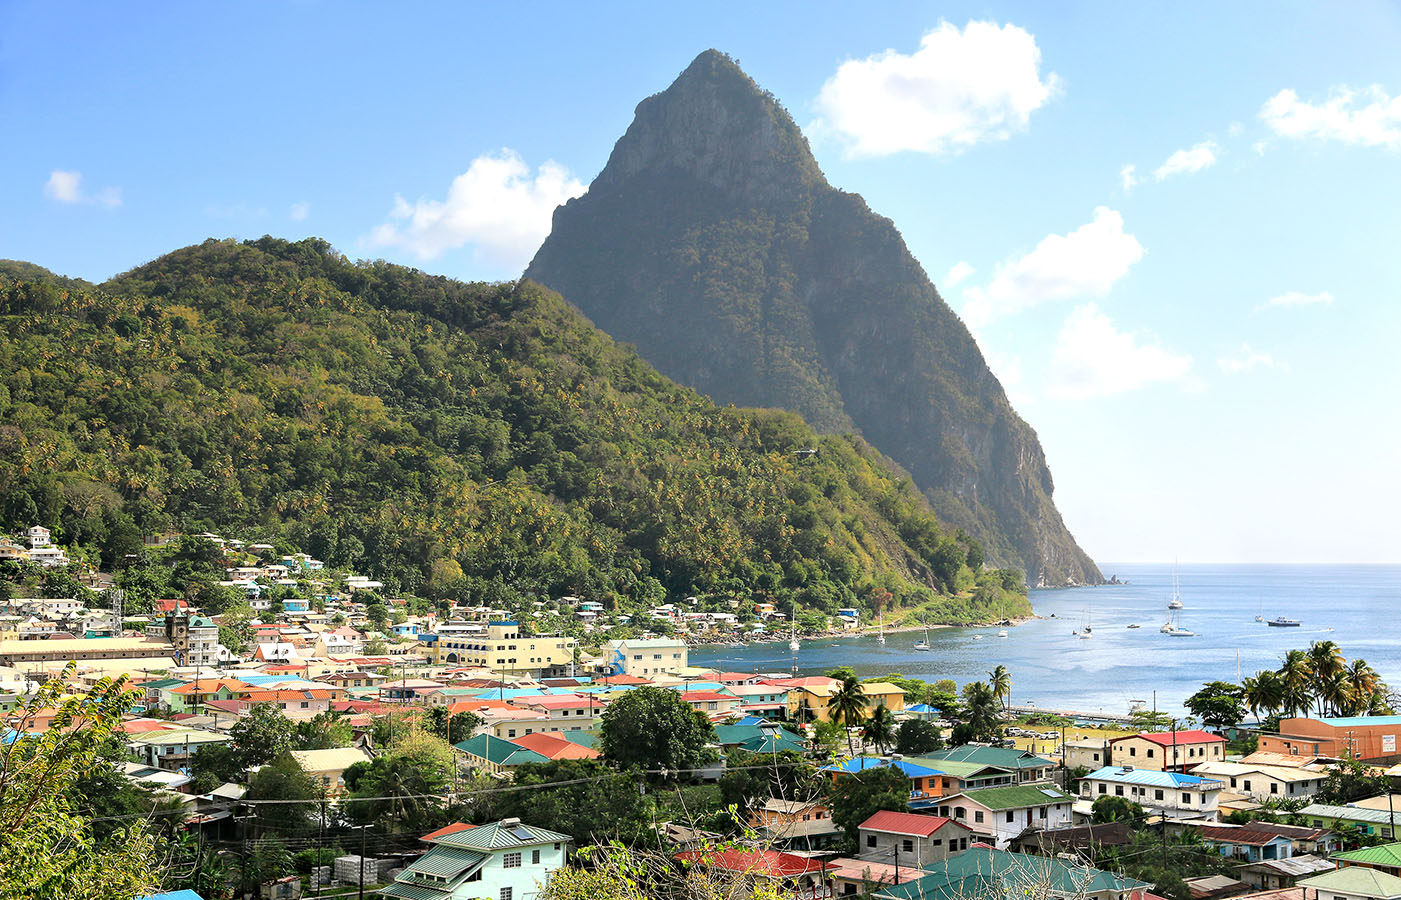 Aerial view of the small town Soufriere in Saint Lucia with The Pitons in the distance